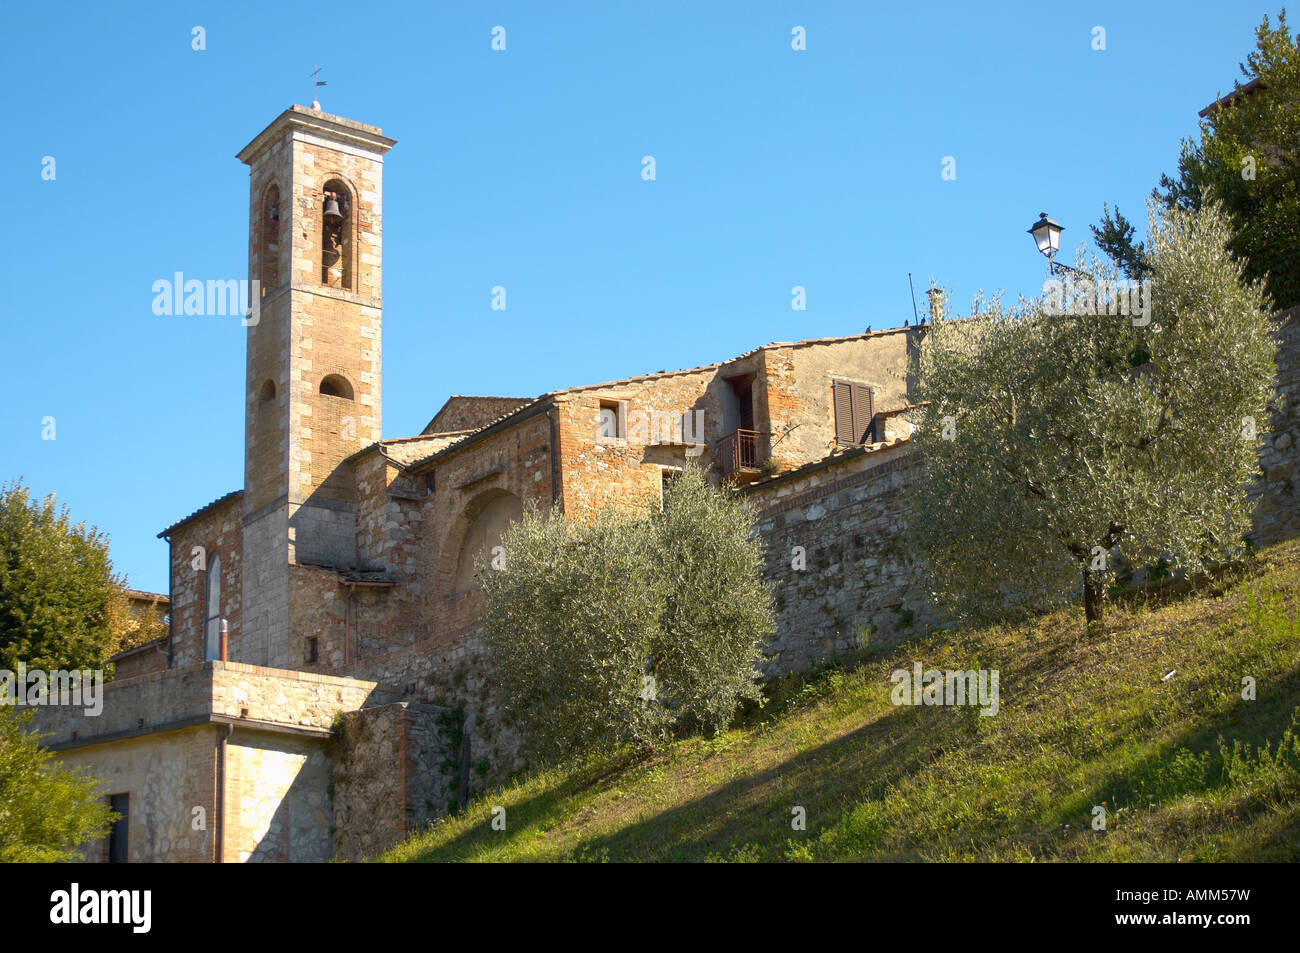 Church Tower in Colle Di Val D Elsa Tuscany Italy - Stock Image